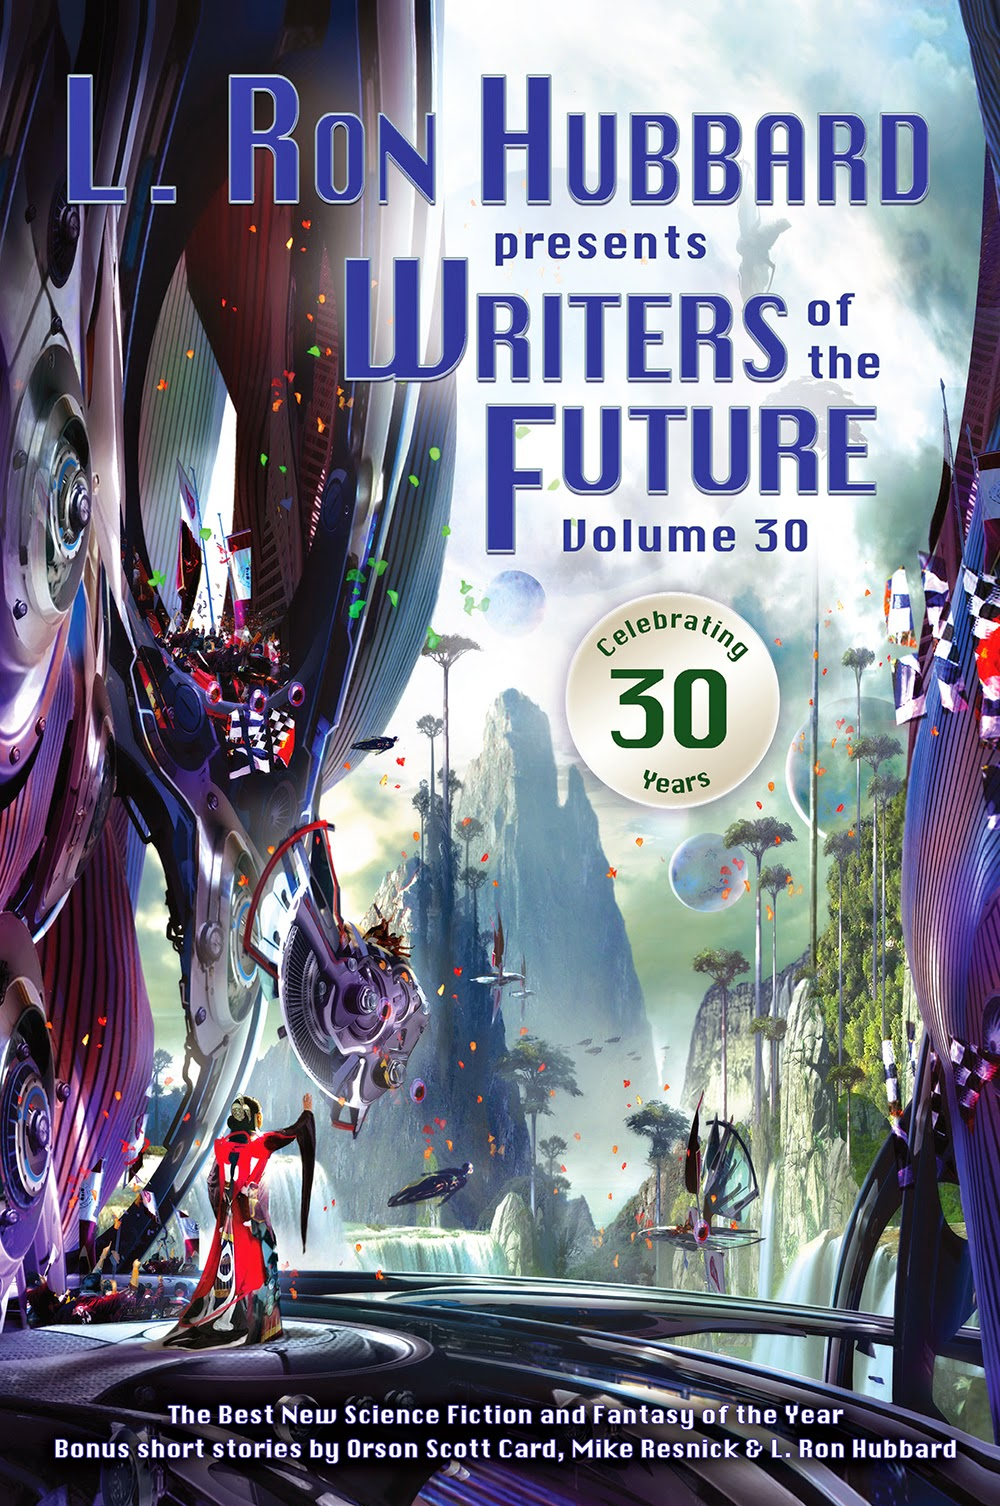 Review - L. Ron Hubbard Presents Writers of the Future Volume 30